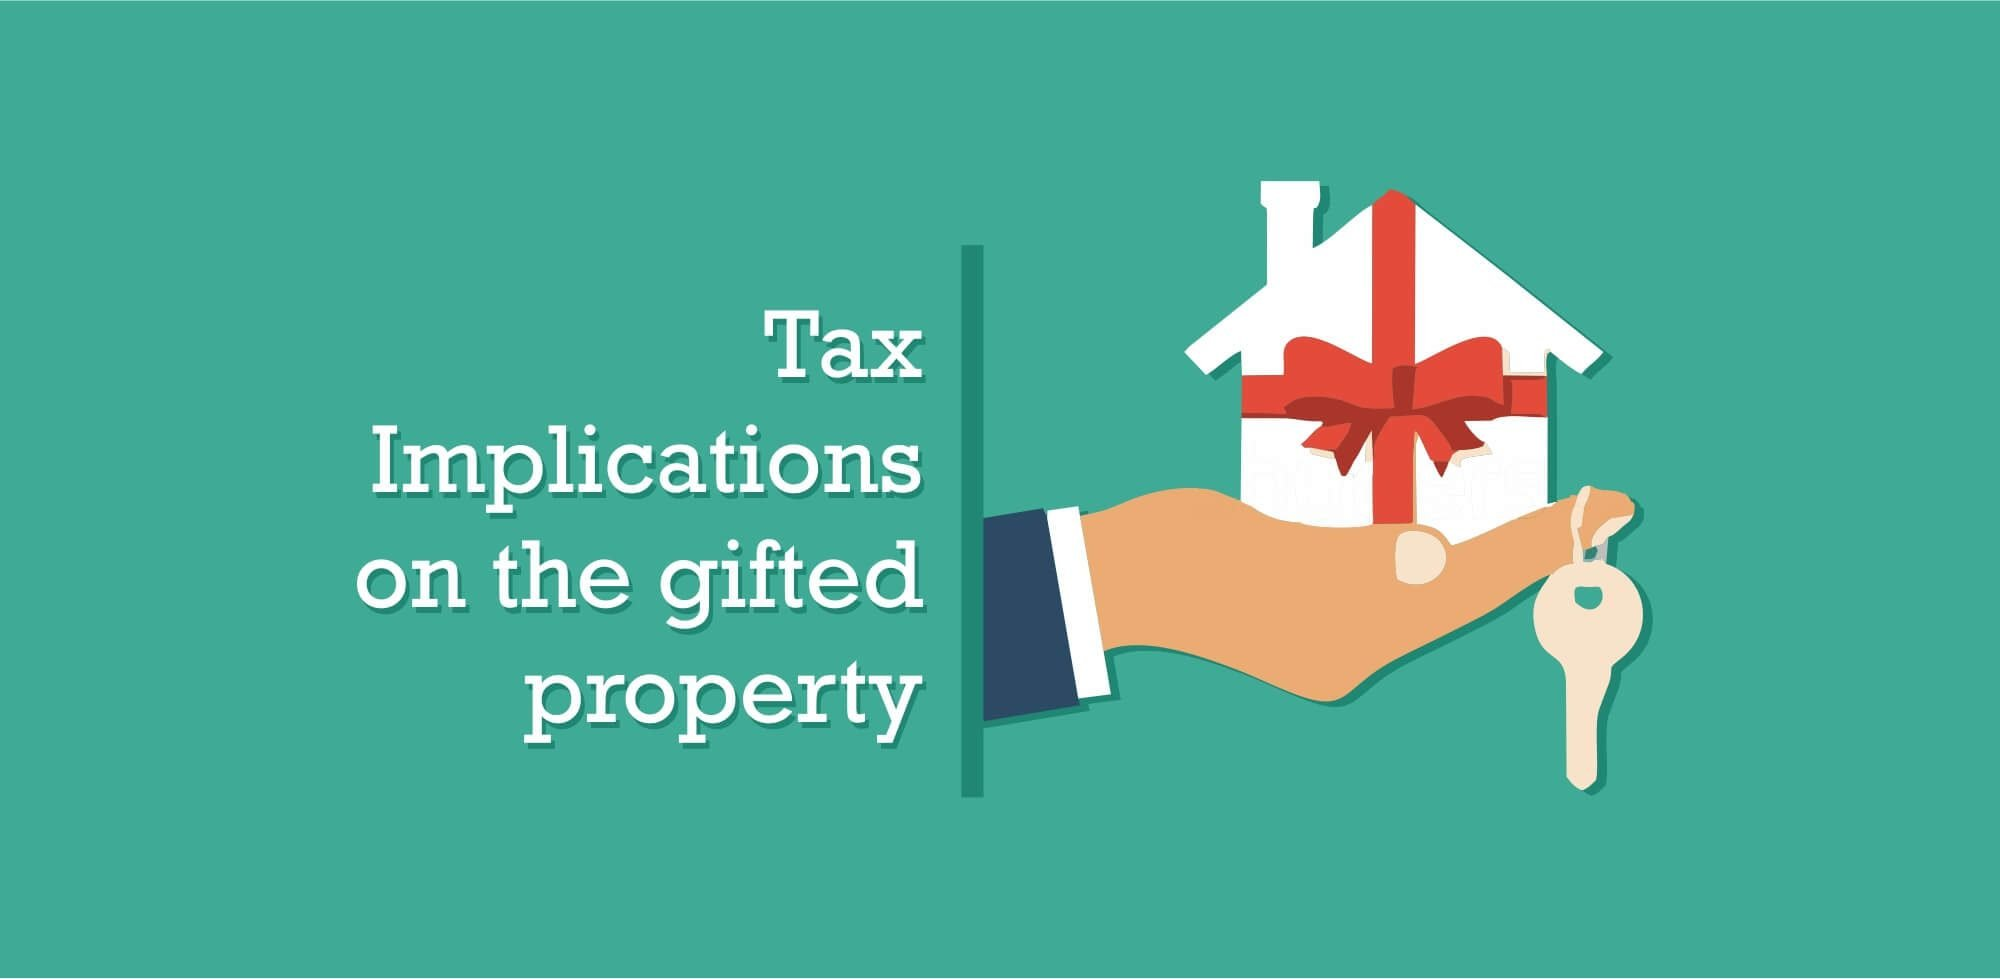 Tax implications on a gifted property